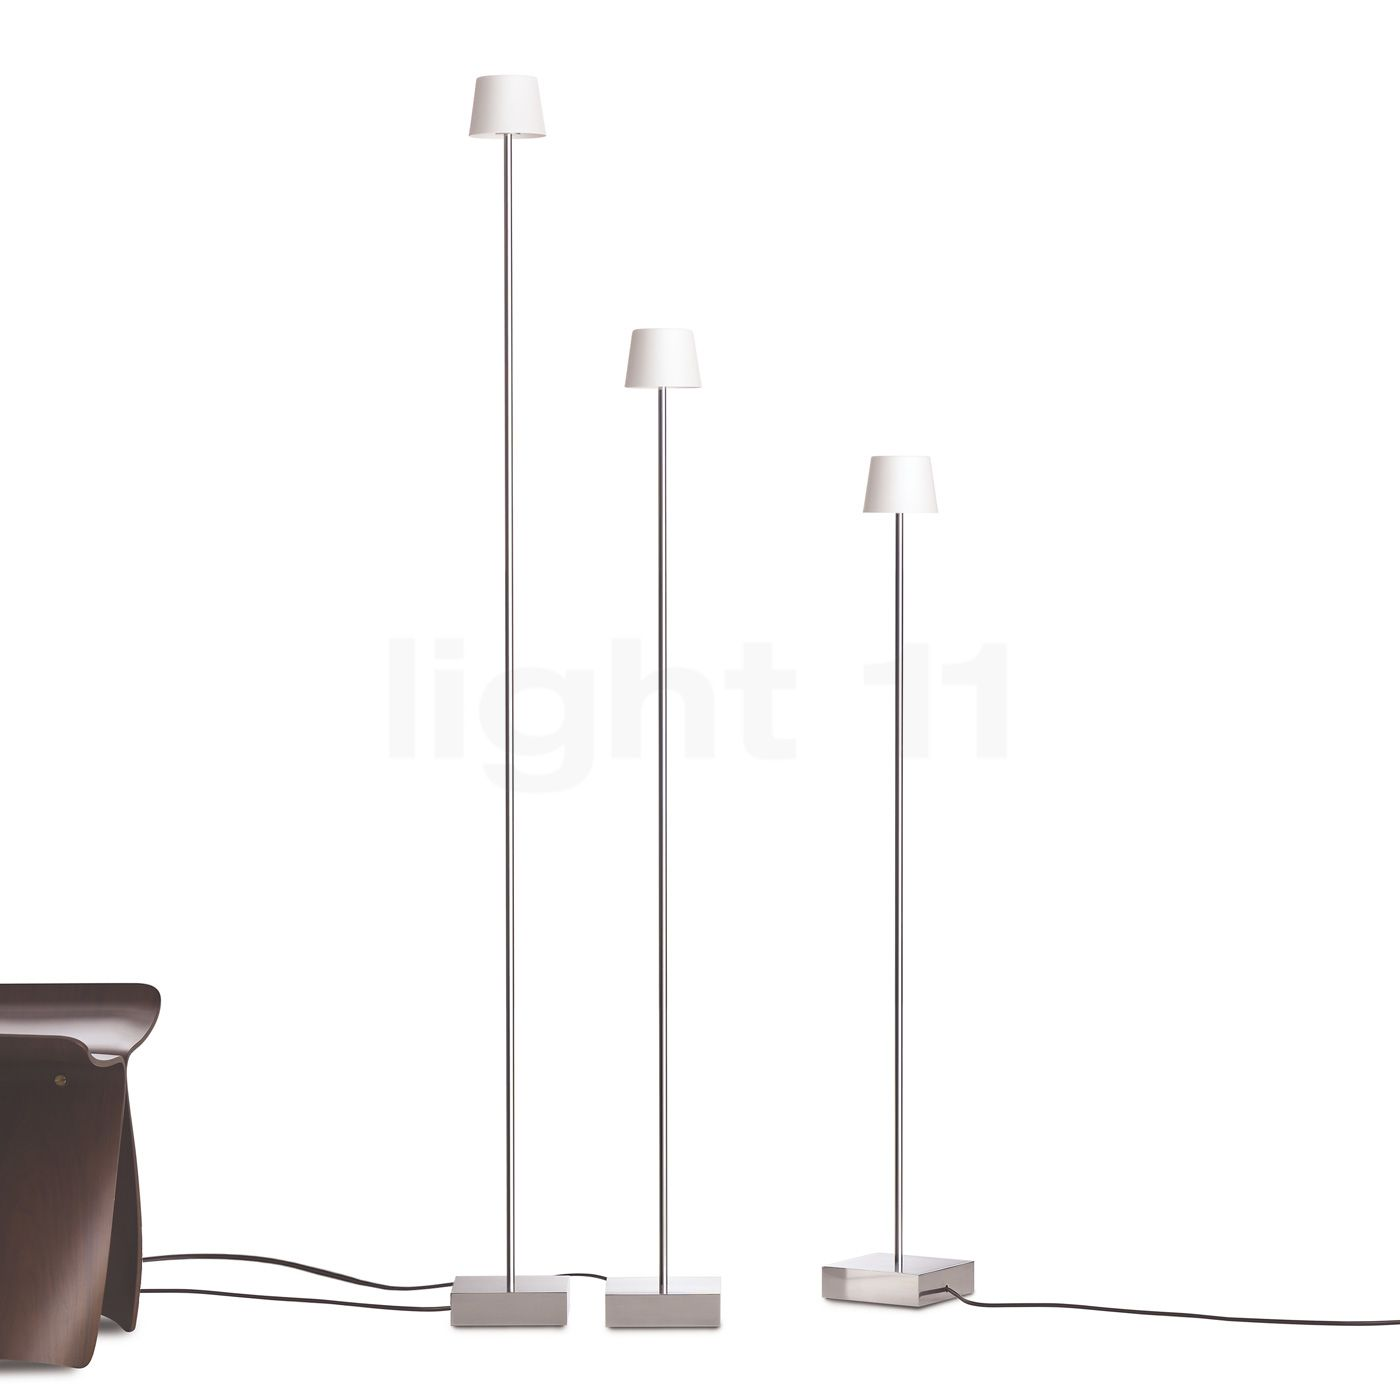 Buy Anta Cut floor lamp with cord dimmer at light11.eu